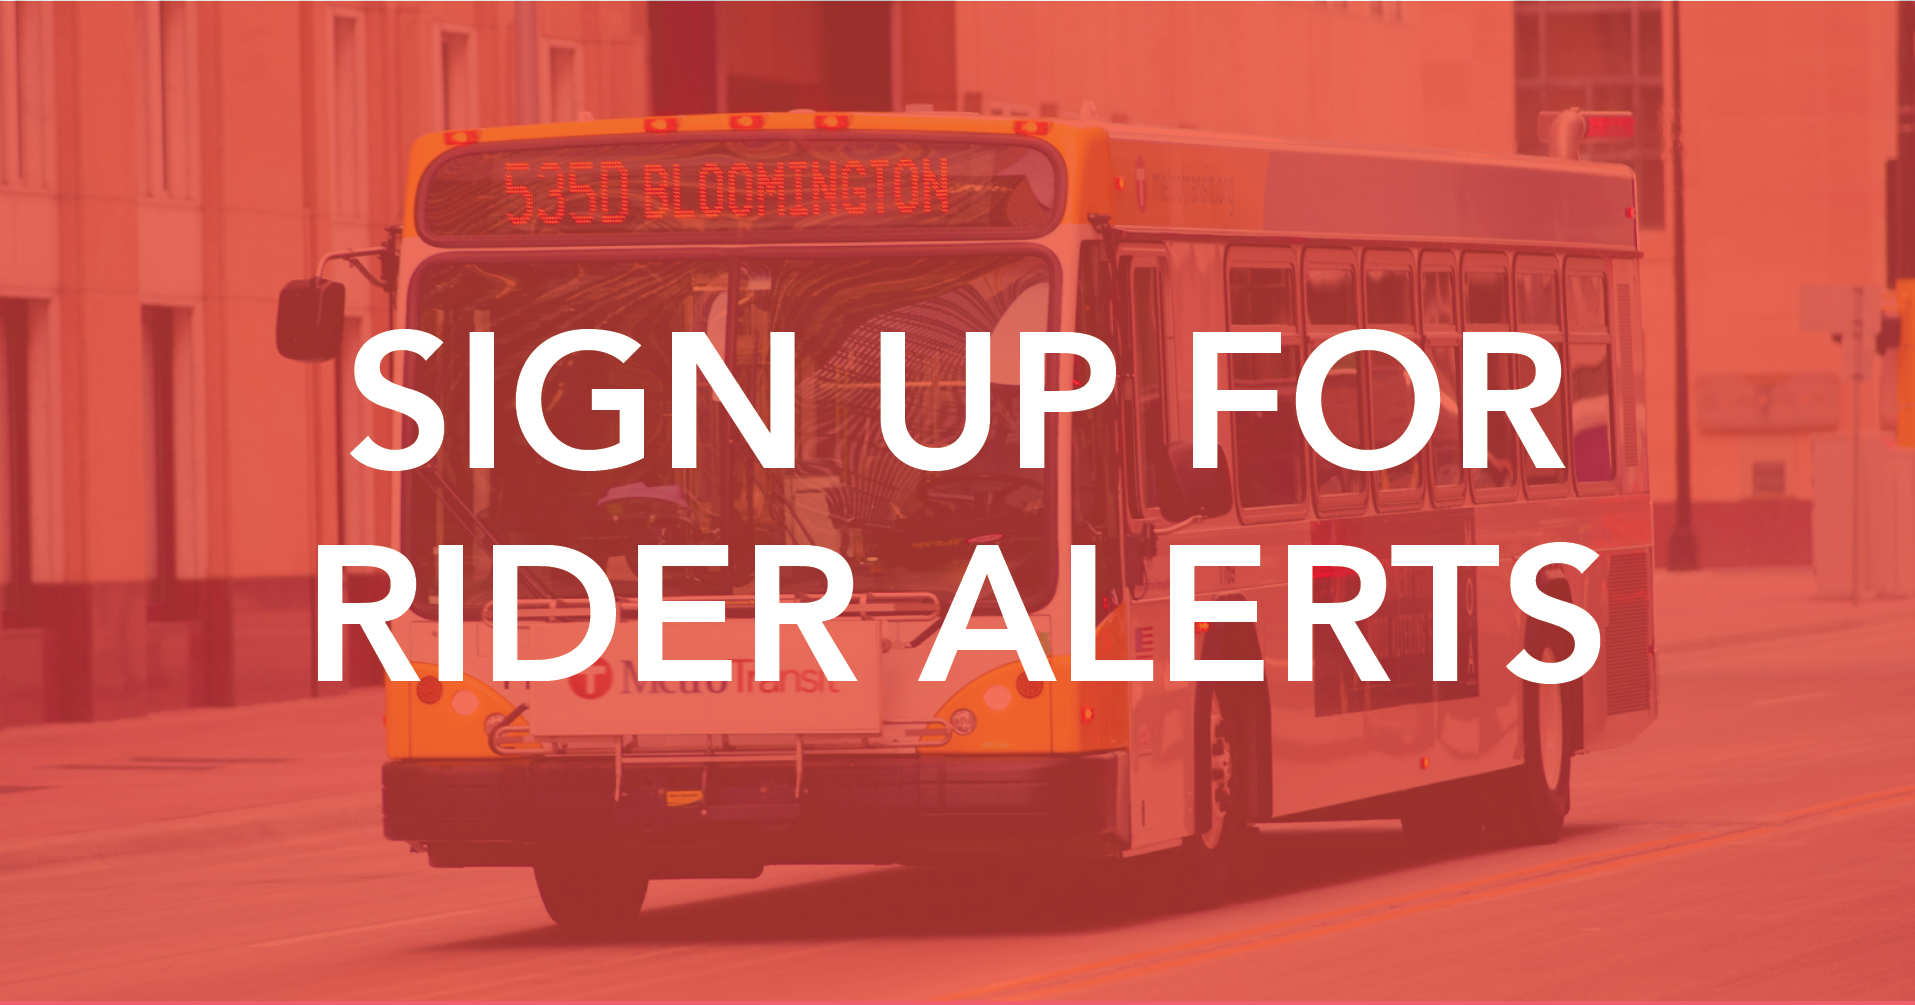 Sign up for rider alerts image linke to rider alerts page